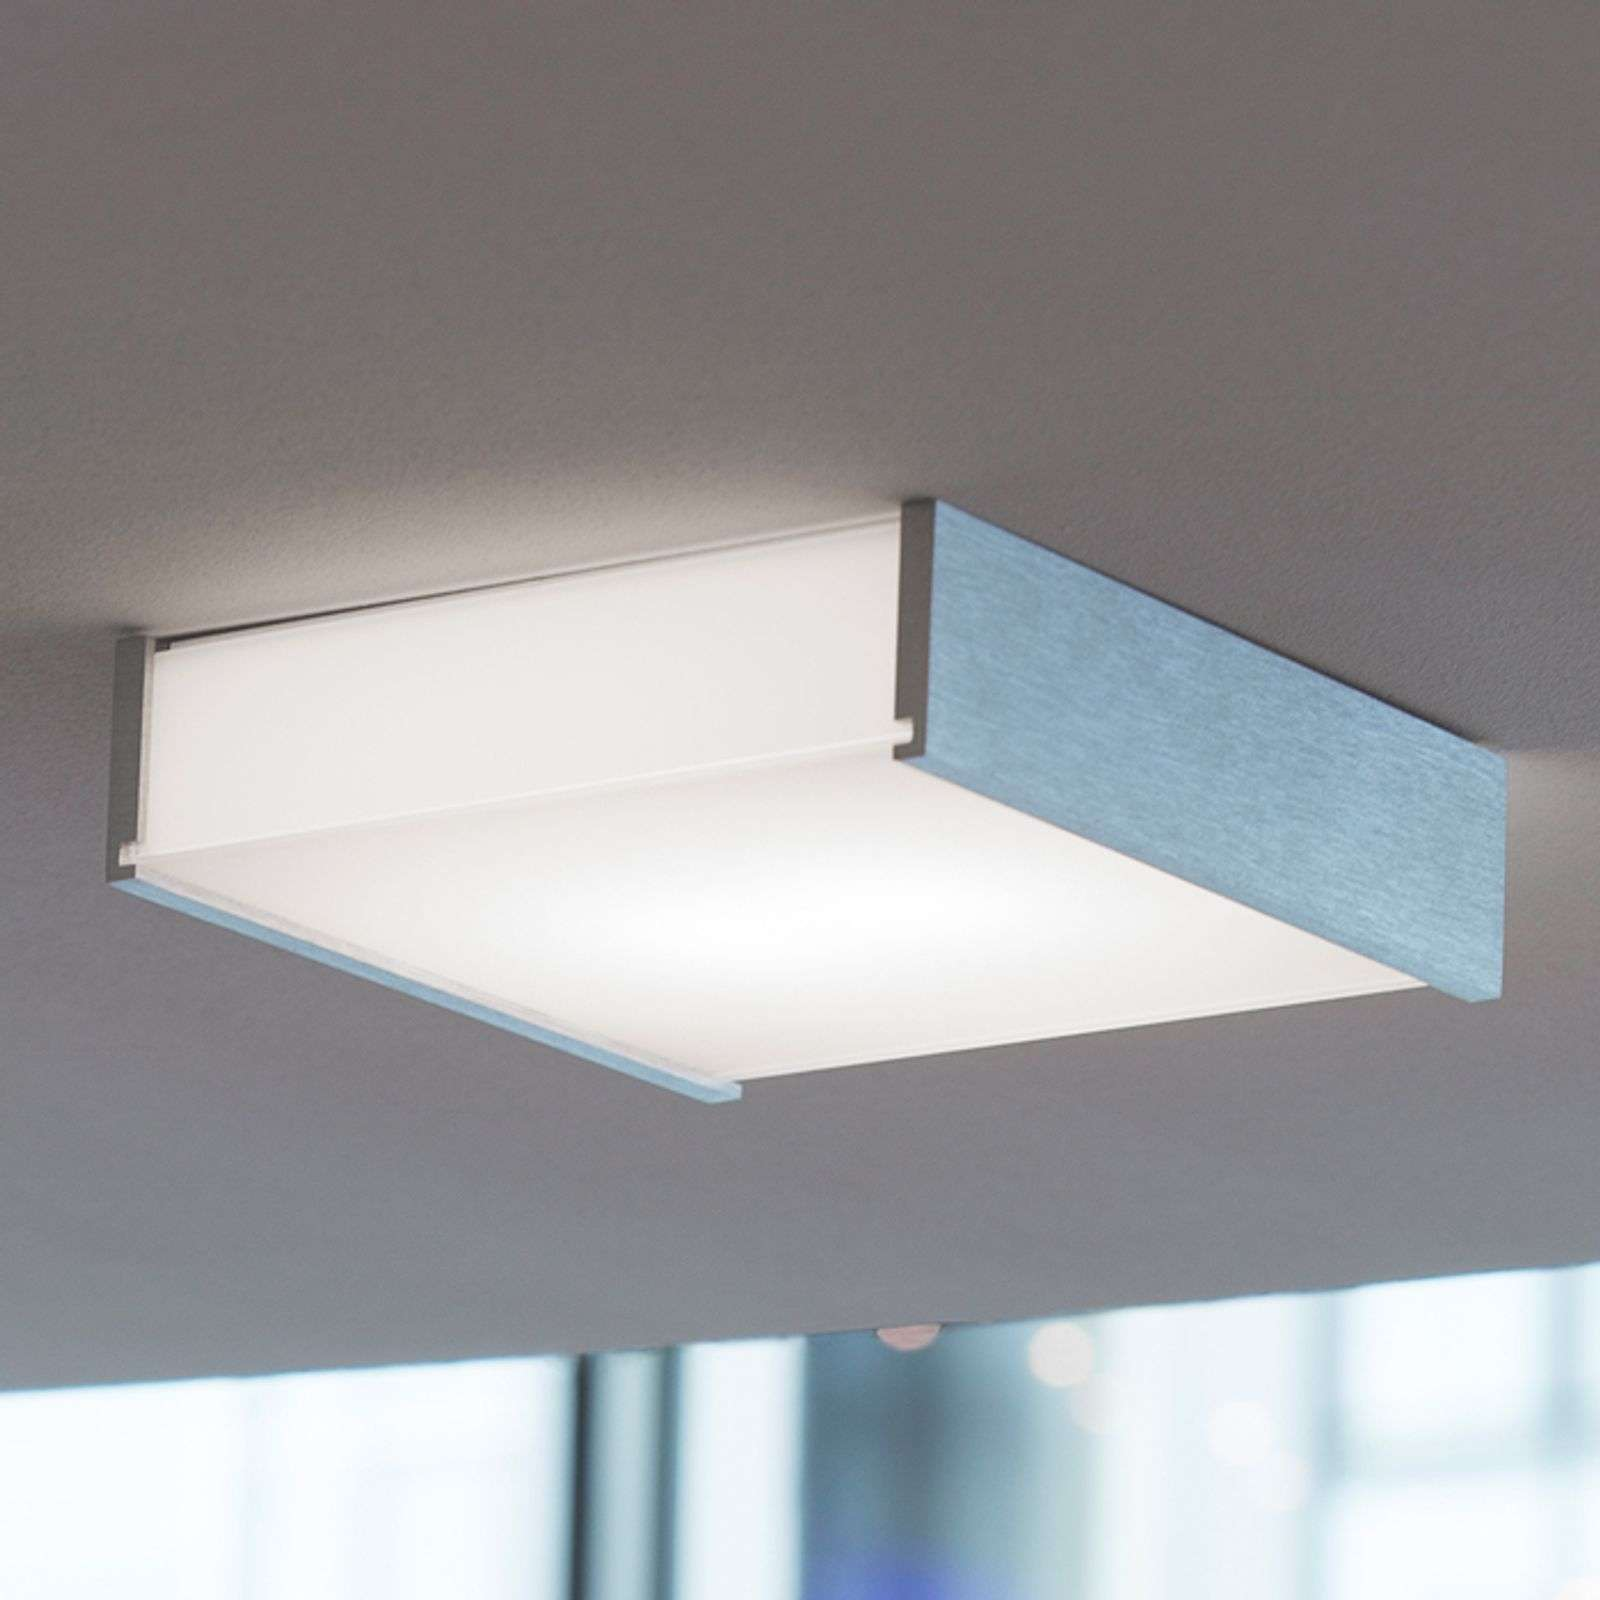 Potente plafoniera LED Box 30 cm